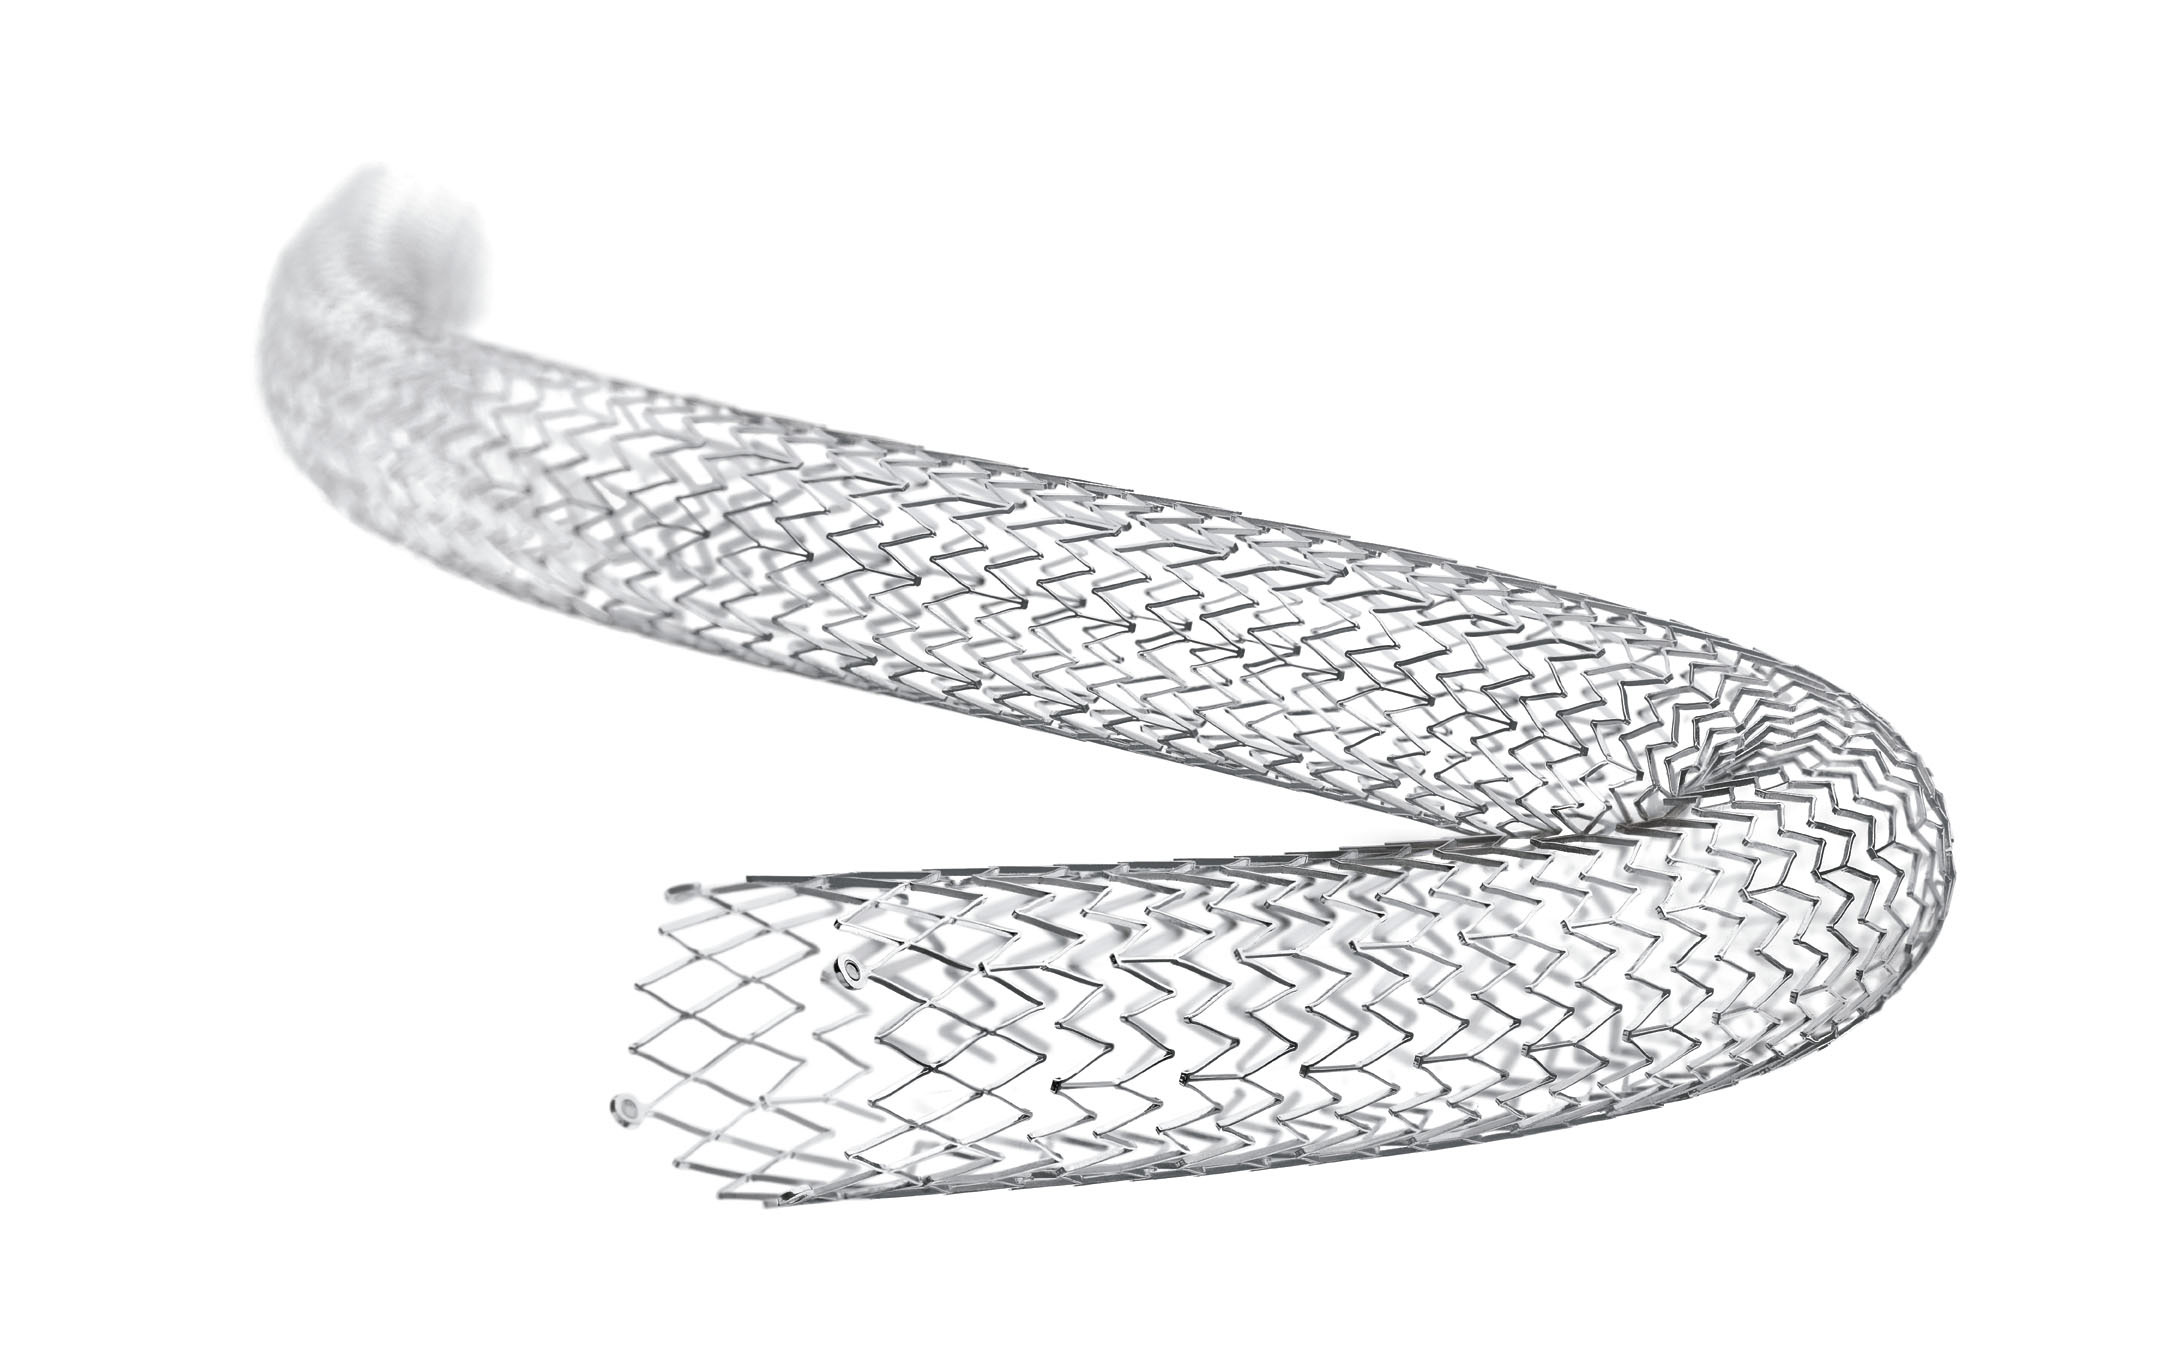 The Eluvia™ Drug-Eluting Vascular Stent System is designed to restore blood flow in arteries above the knee, specifically the superficial femoral artery and proximal popliteal artery. The Eluvia Stent System is pending CE Mark and is not available for use or sale in the U.S.